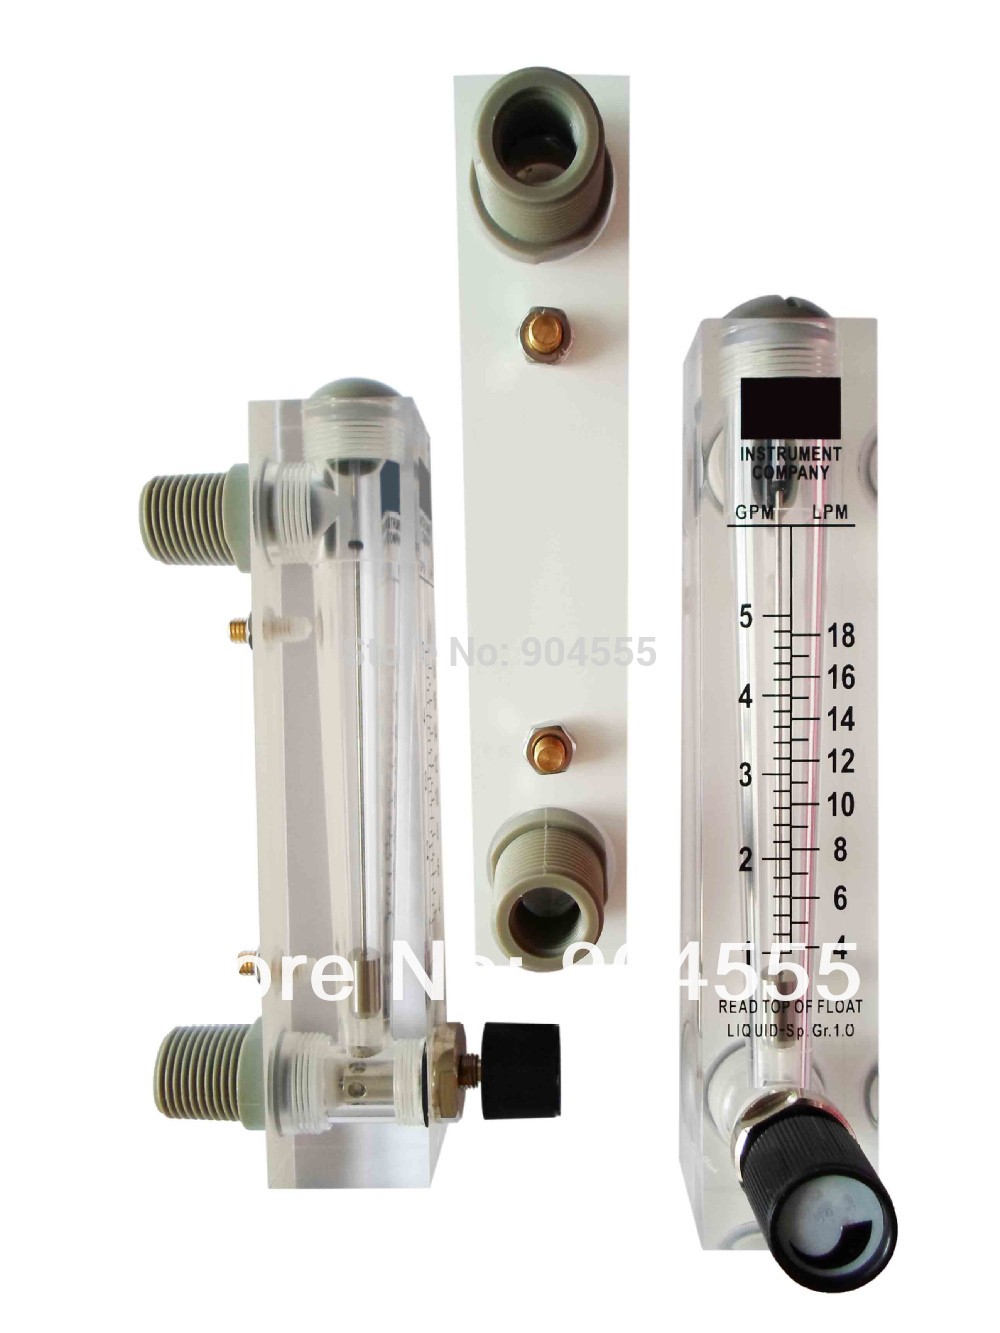 2-18LPM adjustable panel acrylic rotameter flow meter Water flow meter,Liquid flow controller with adjustable valve lzm 6t 0 5 3lpm 1 6scfh panel acrylic type flowmeter flow meter with adjust valve brass fitting female